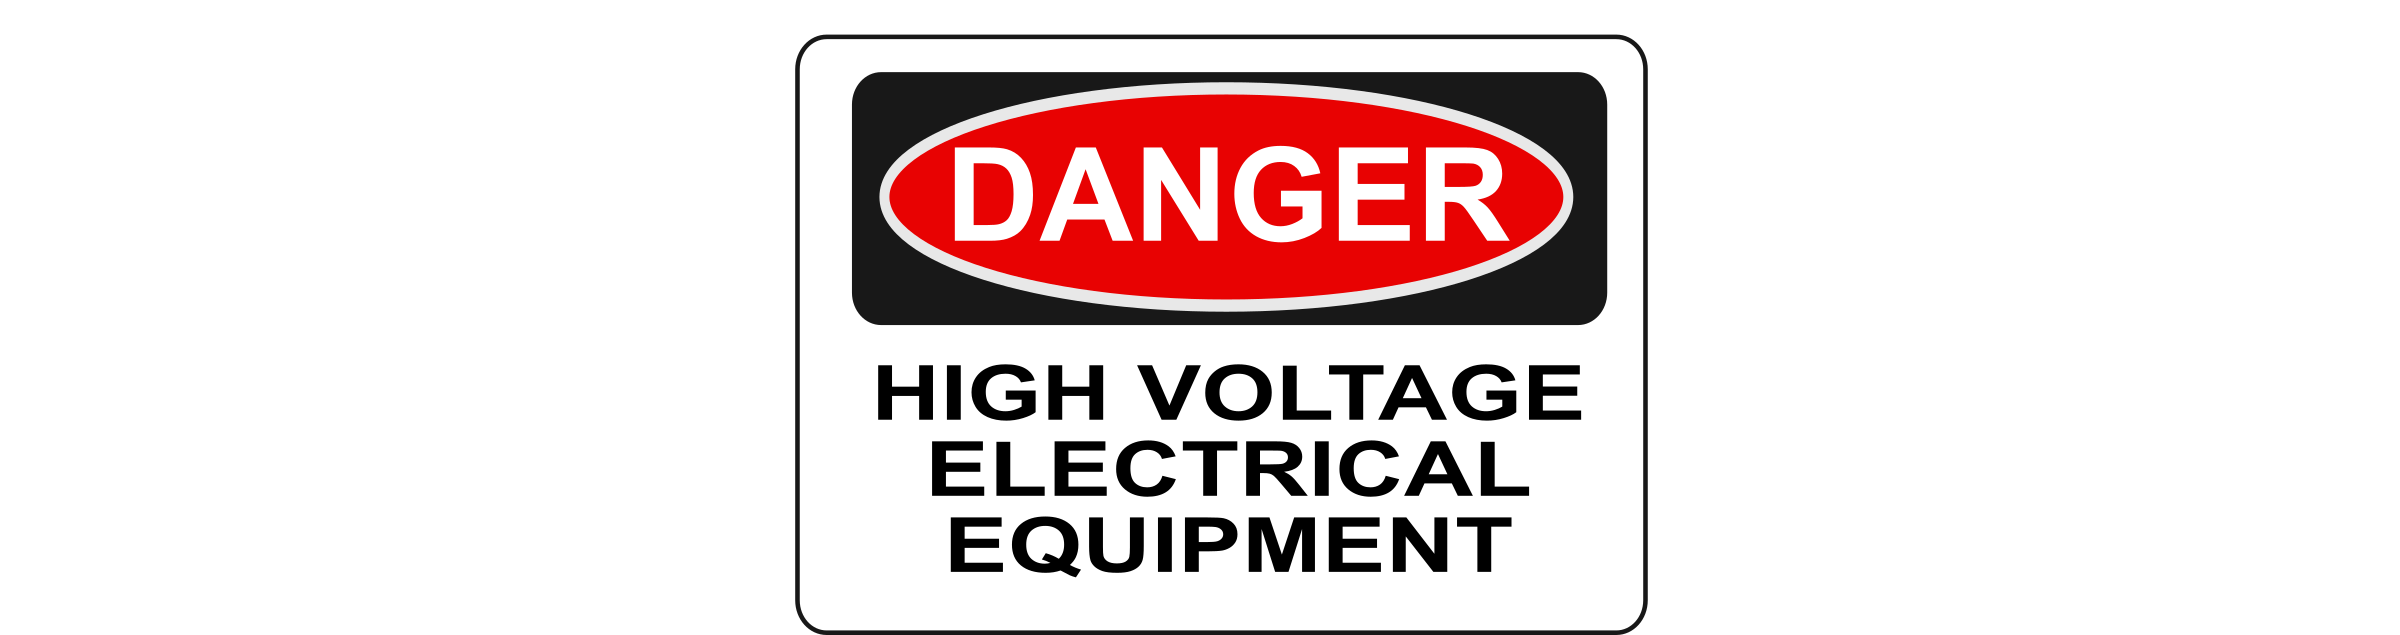 Danger - High Voltage Electrical Equipment by Rfc1394